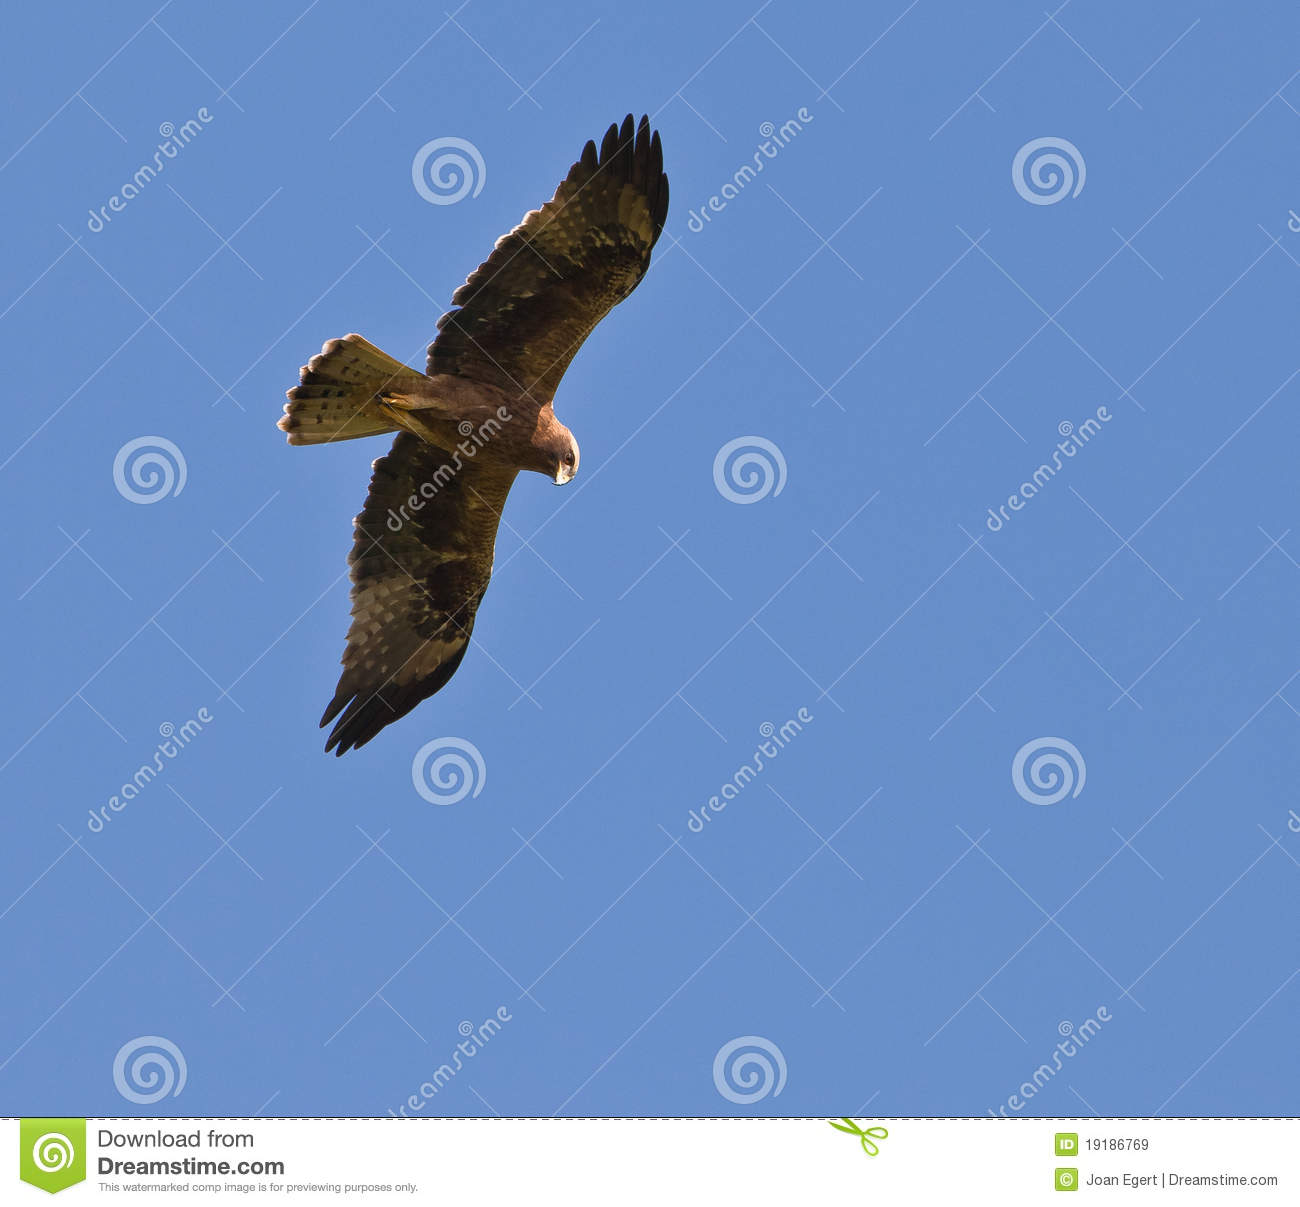 Golden Eagle on flight